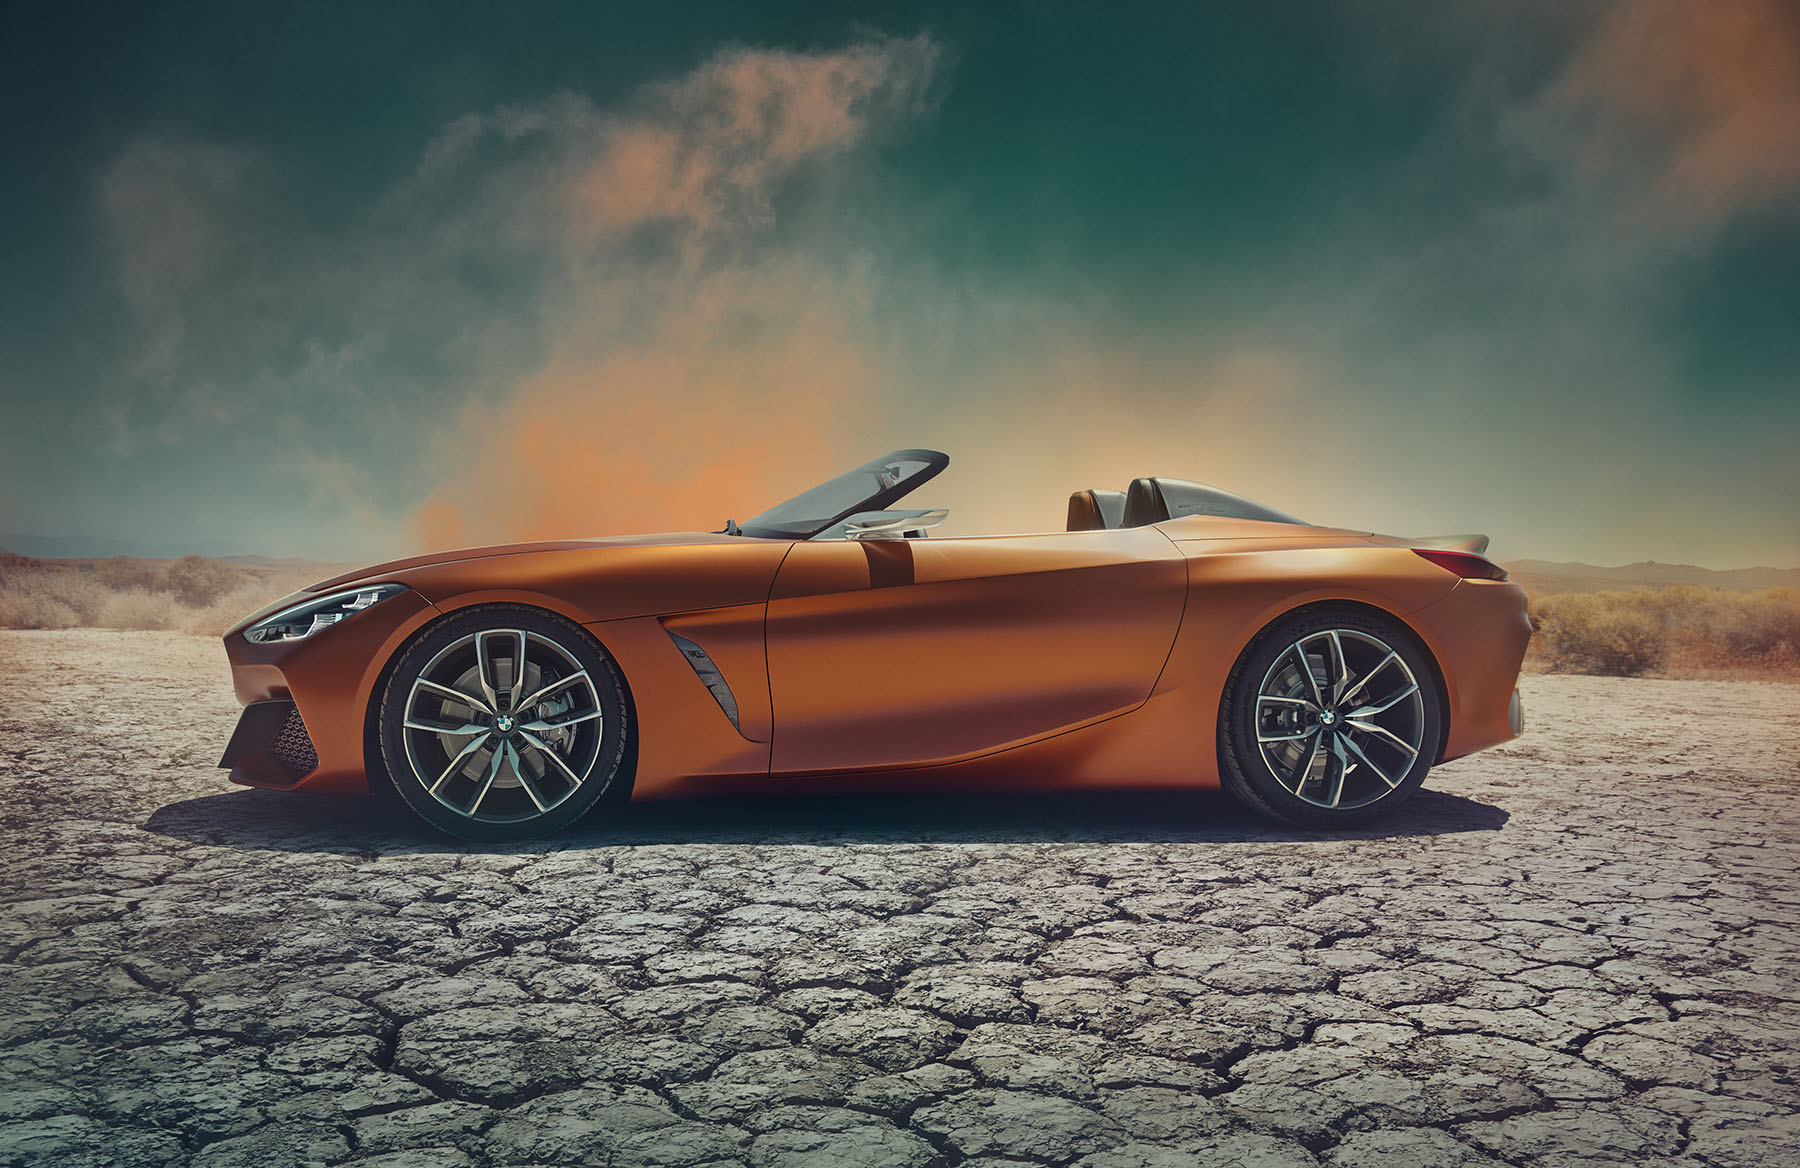 TrackWorthy - BMW Concept Z4 unveiled at Pebble Beach Concours d'Elegance (2)